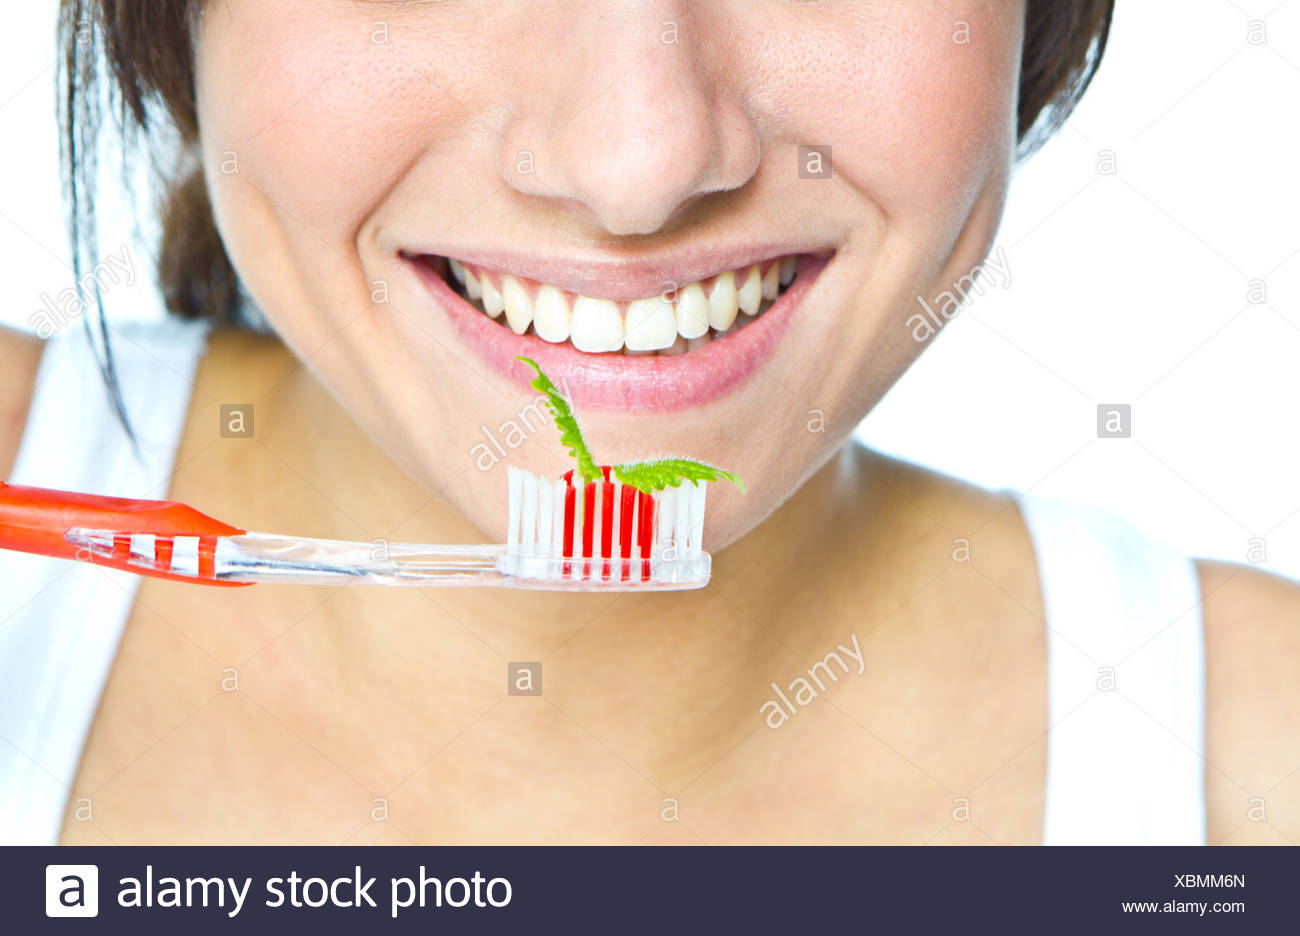 Dental Care - Stock Image